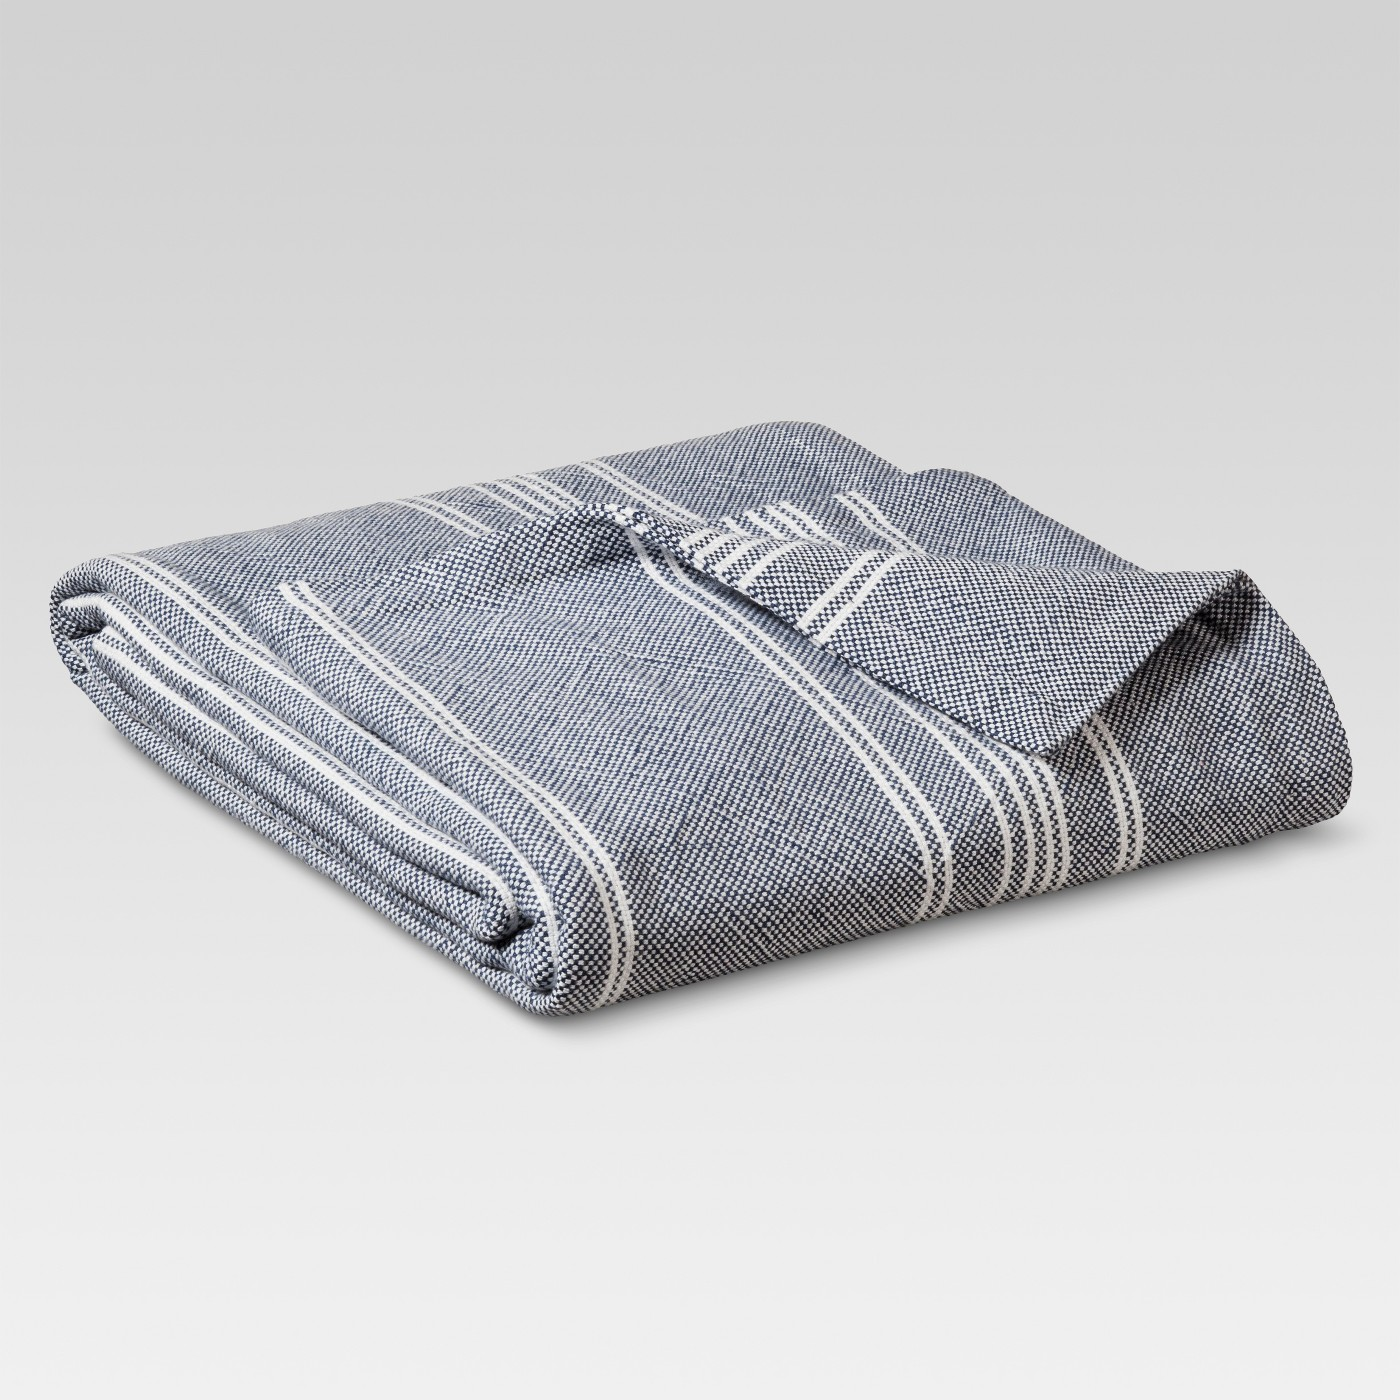 navy and white striped blanket for fall update your bedding